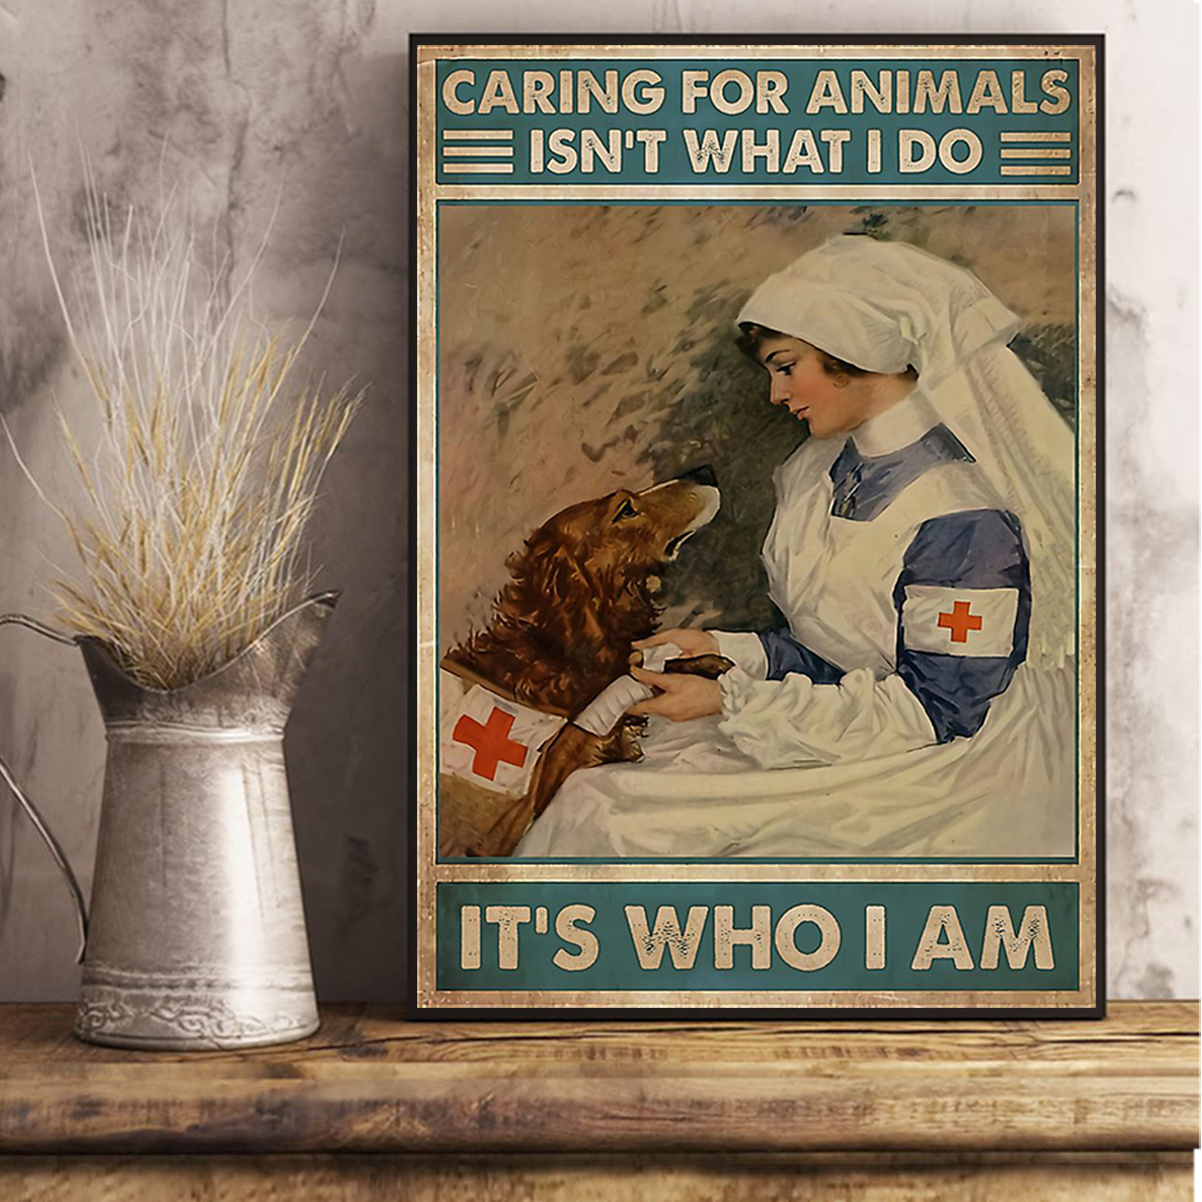 Veterinarian caring for animals isn't what I do It's who I am poster A2